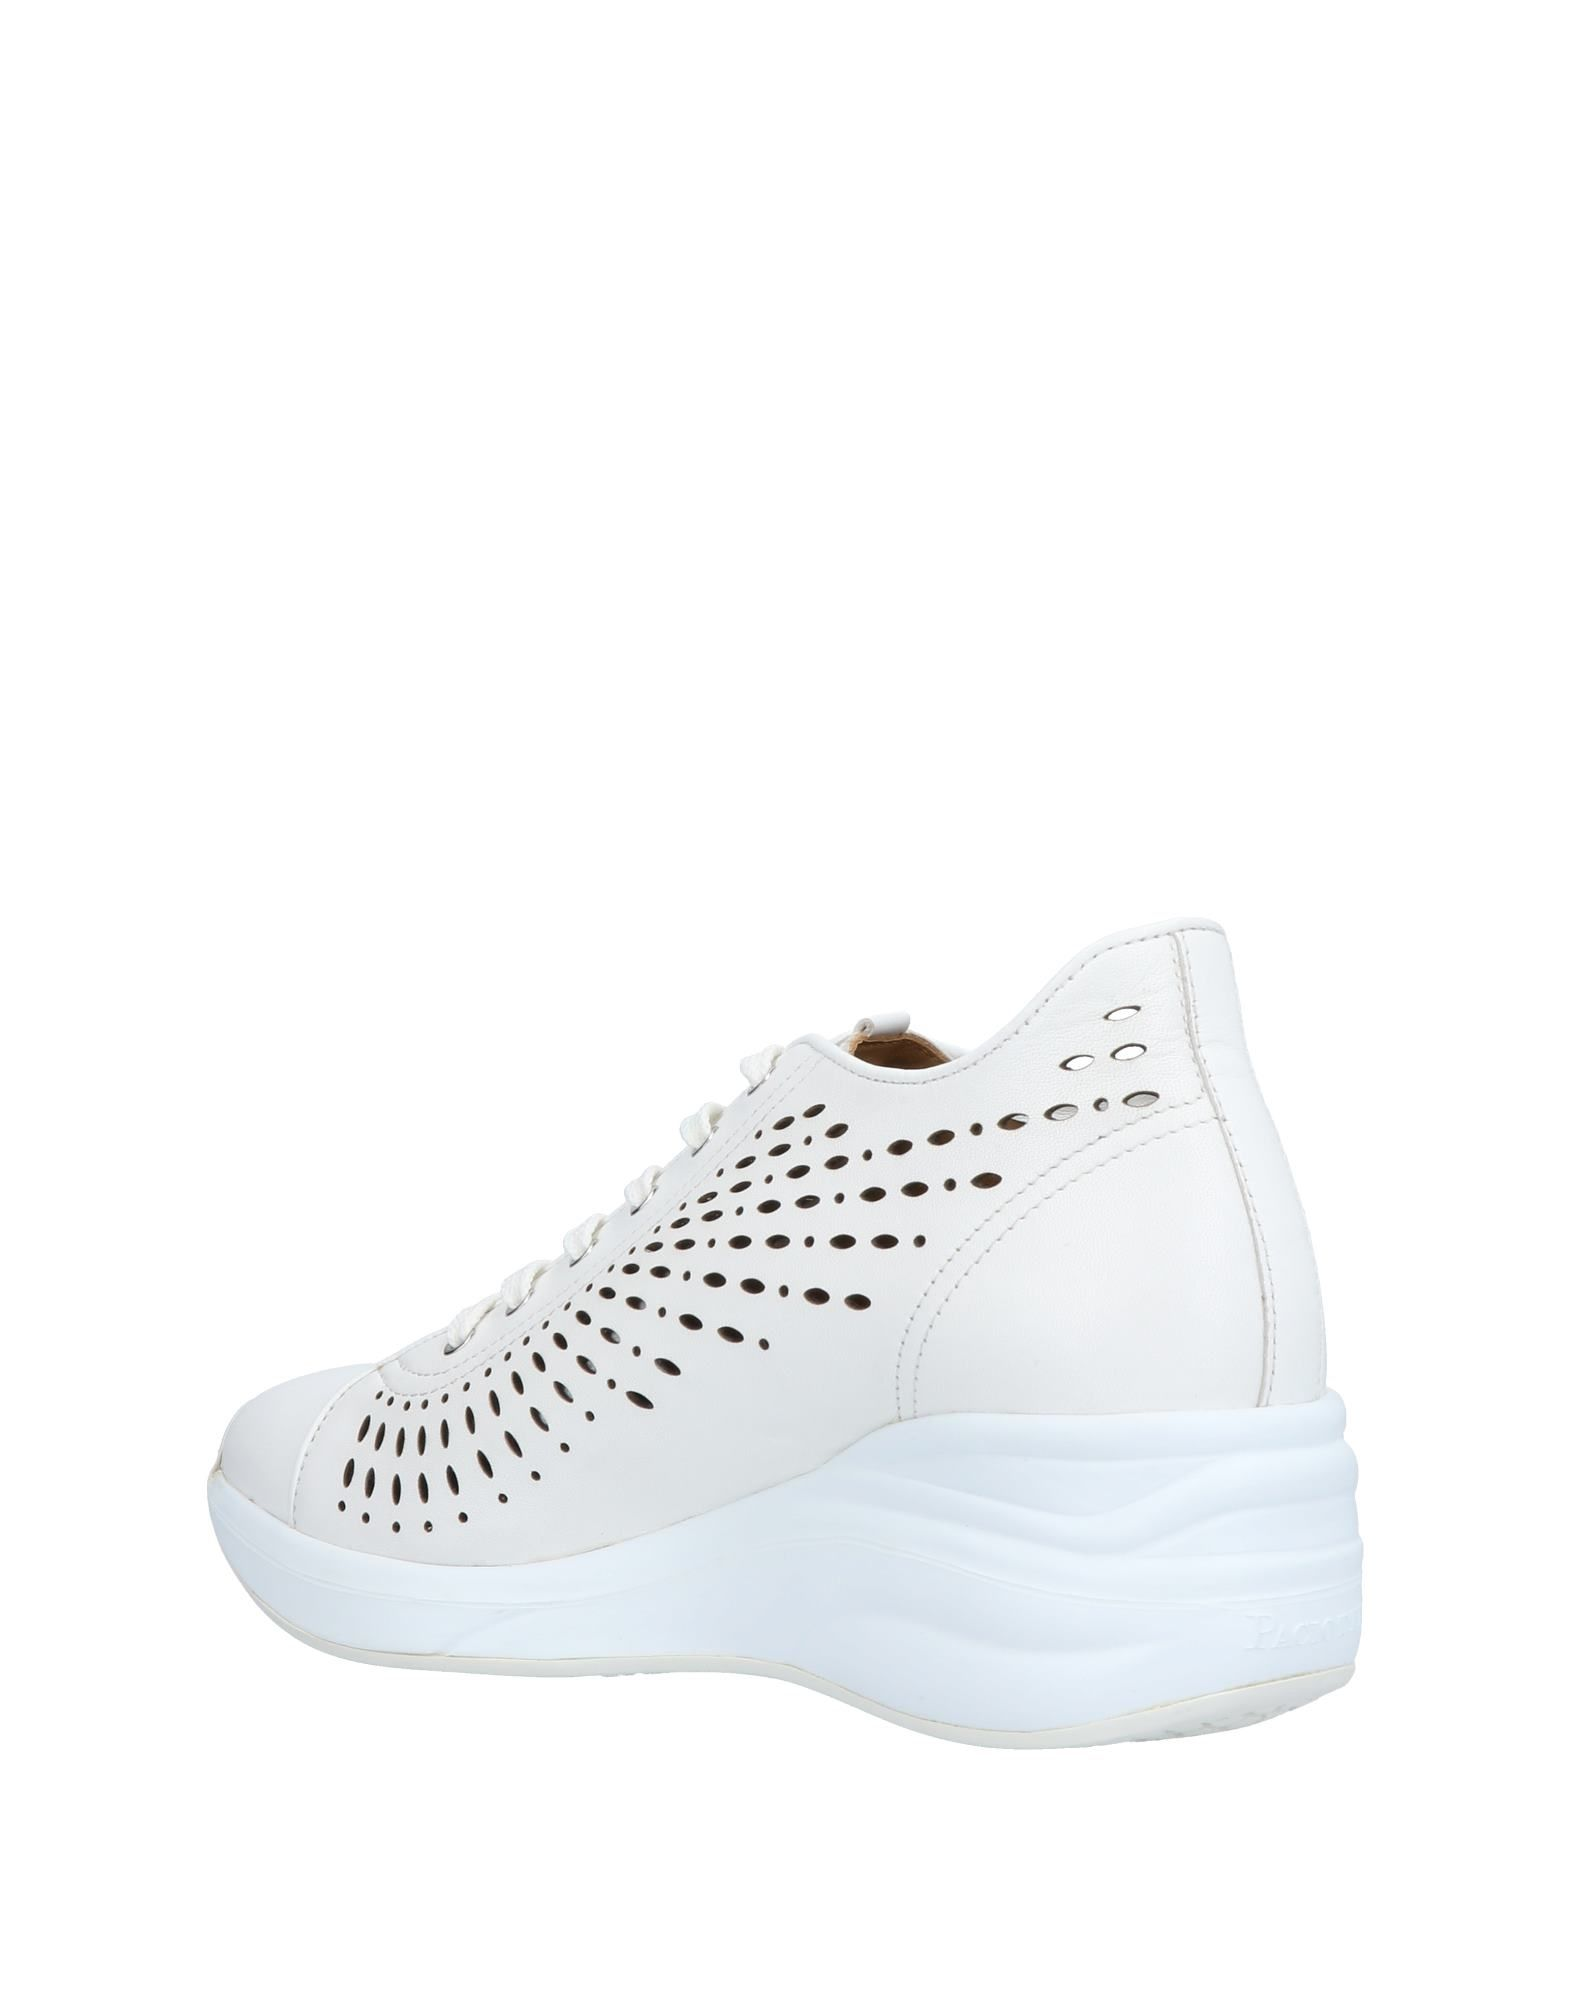 Stilvolle 4Us billige Schuhe Cesare Paciotti 4Us Stilvolle Sneakers Damen  11455901NS 421754